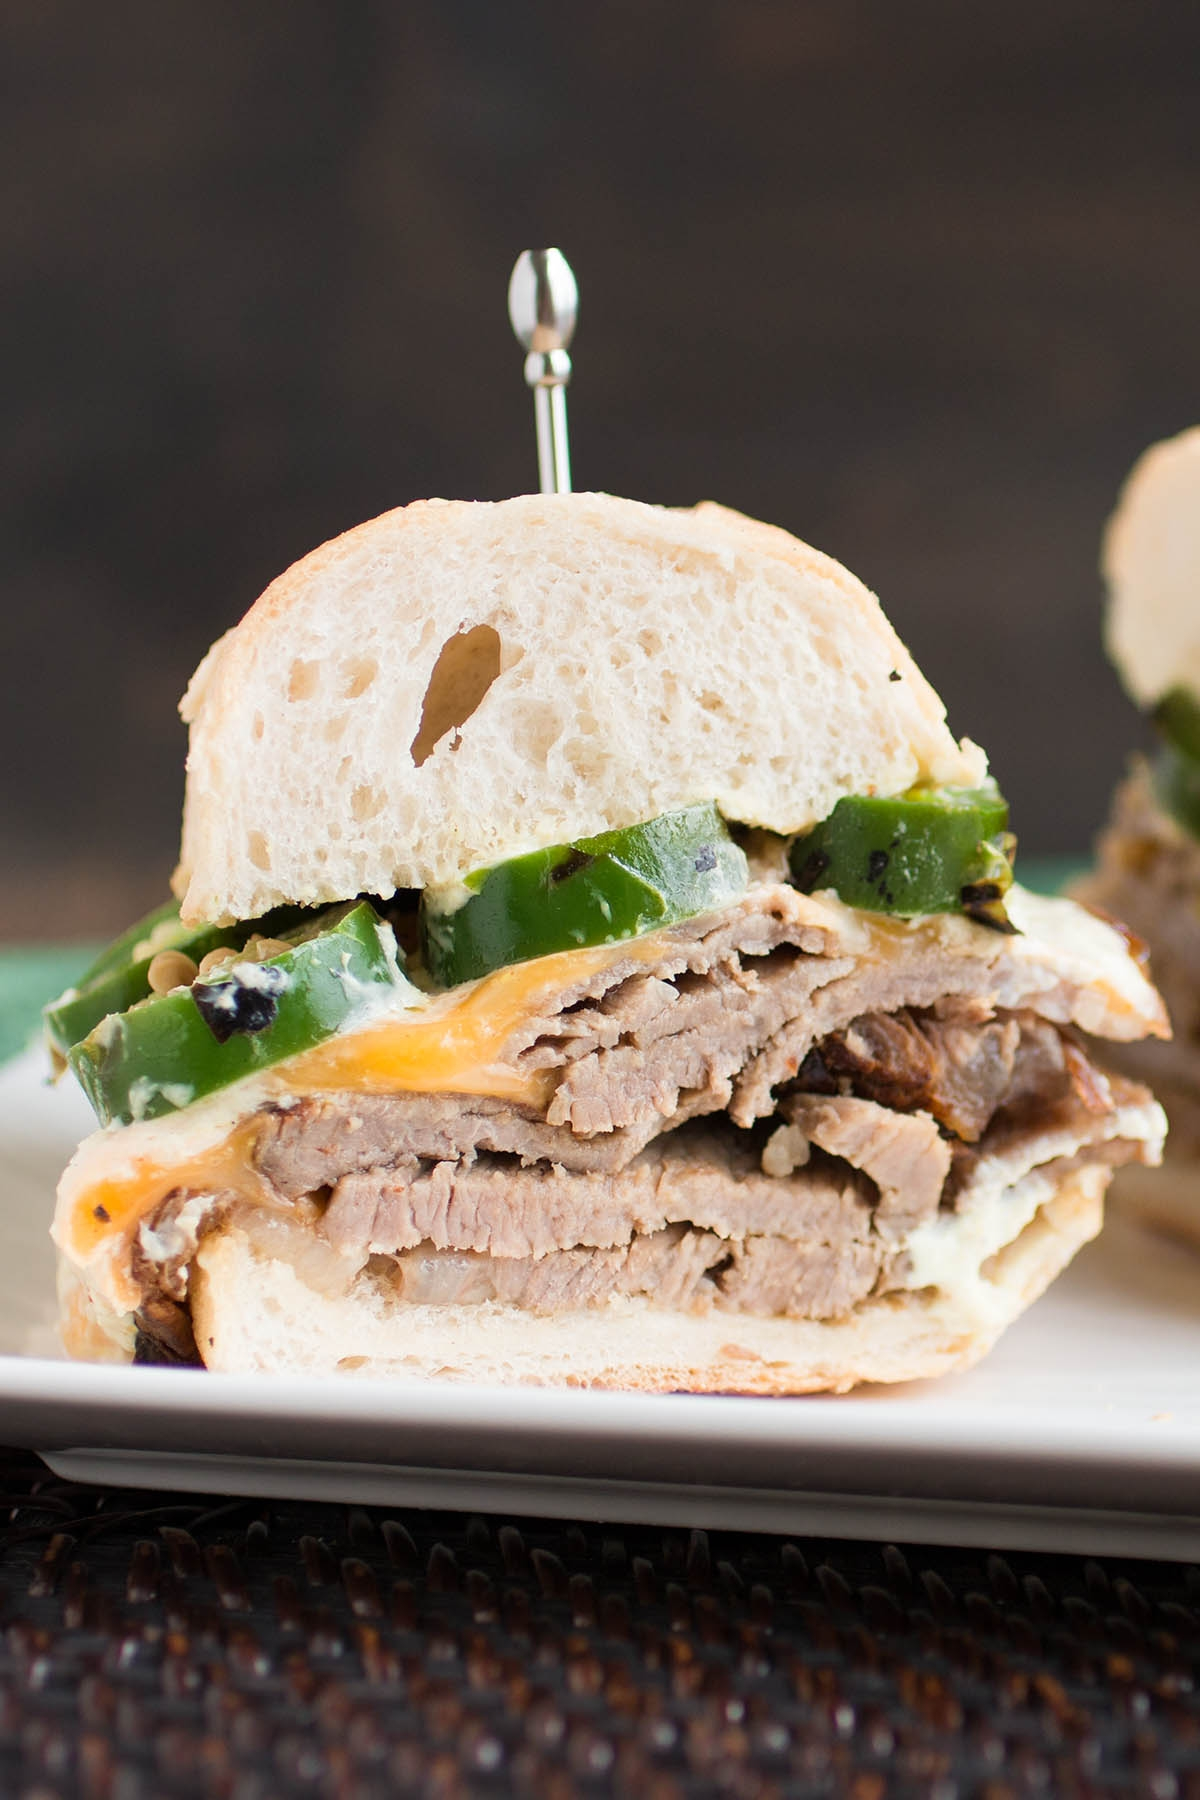 Prime Rib Sandwich with Horseradish Cream Sauce